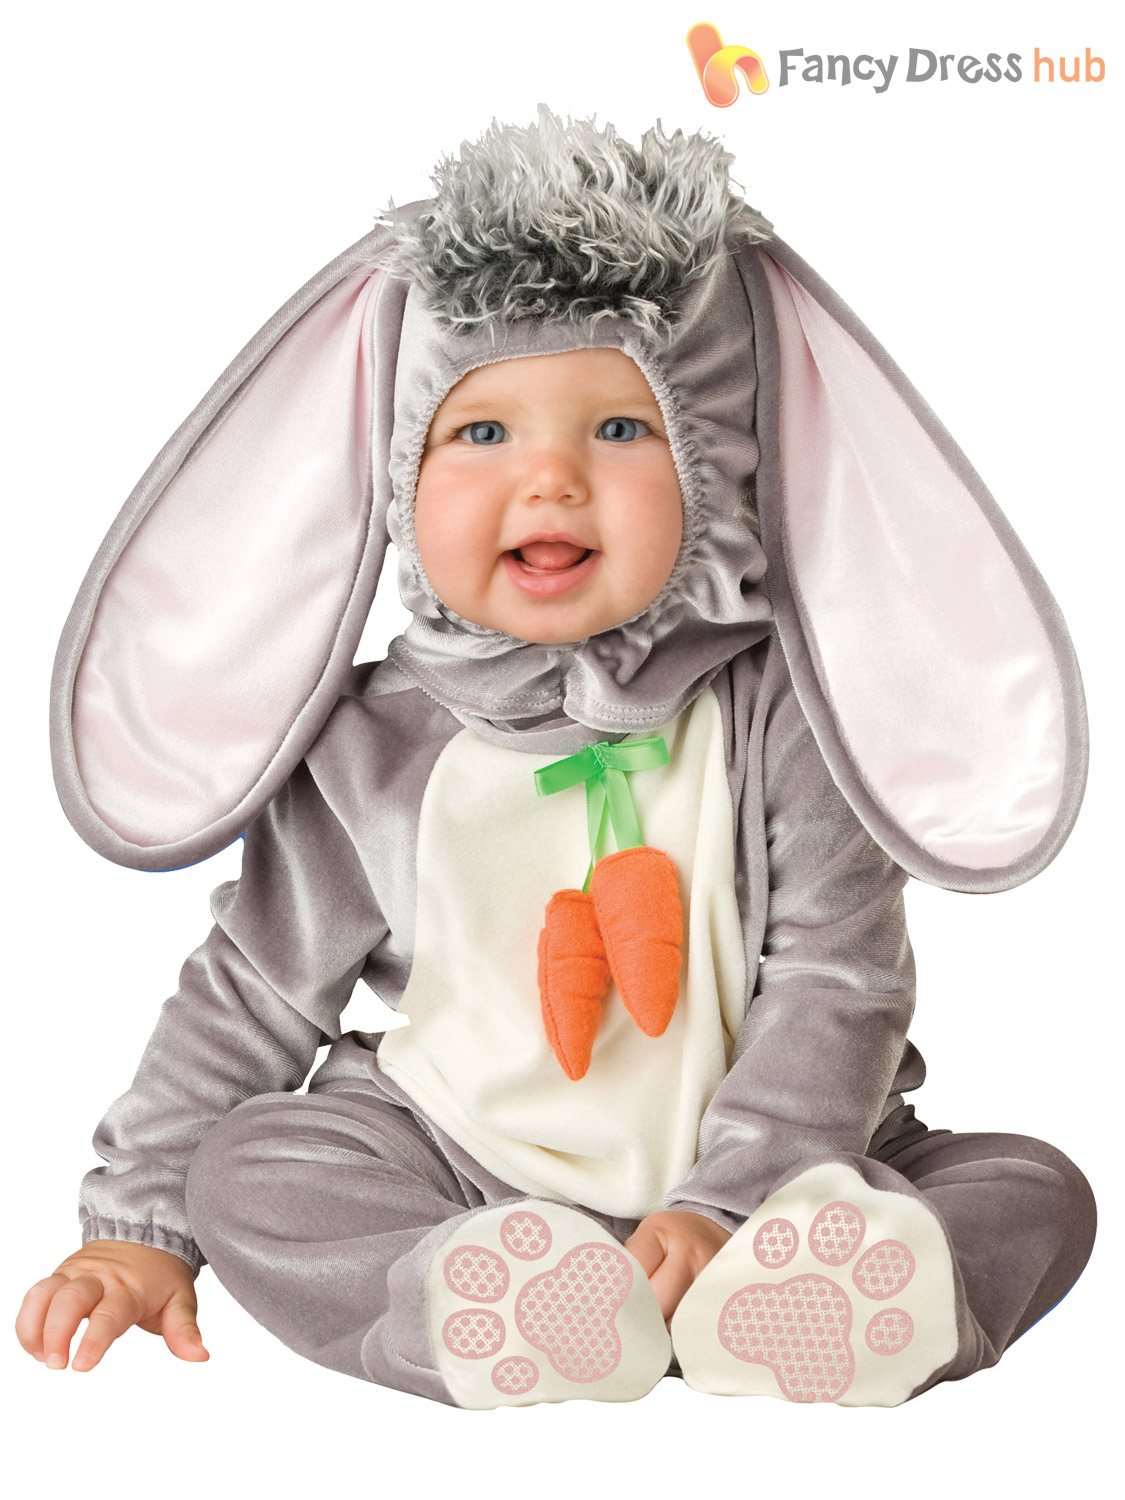 You searched for: baby bunny clothes! Etsy is the home to thousands of handmade, vintage, and one-of-a-kind products and gifts related to your search. No matter what you're looking for or where you are in the world, our global marketplace of sellers can help you .